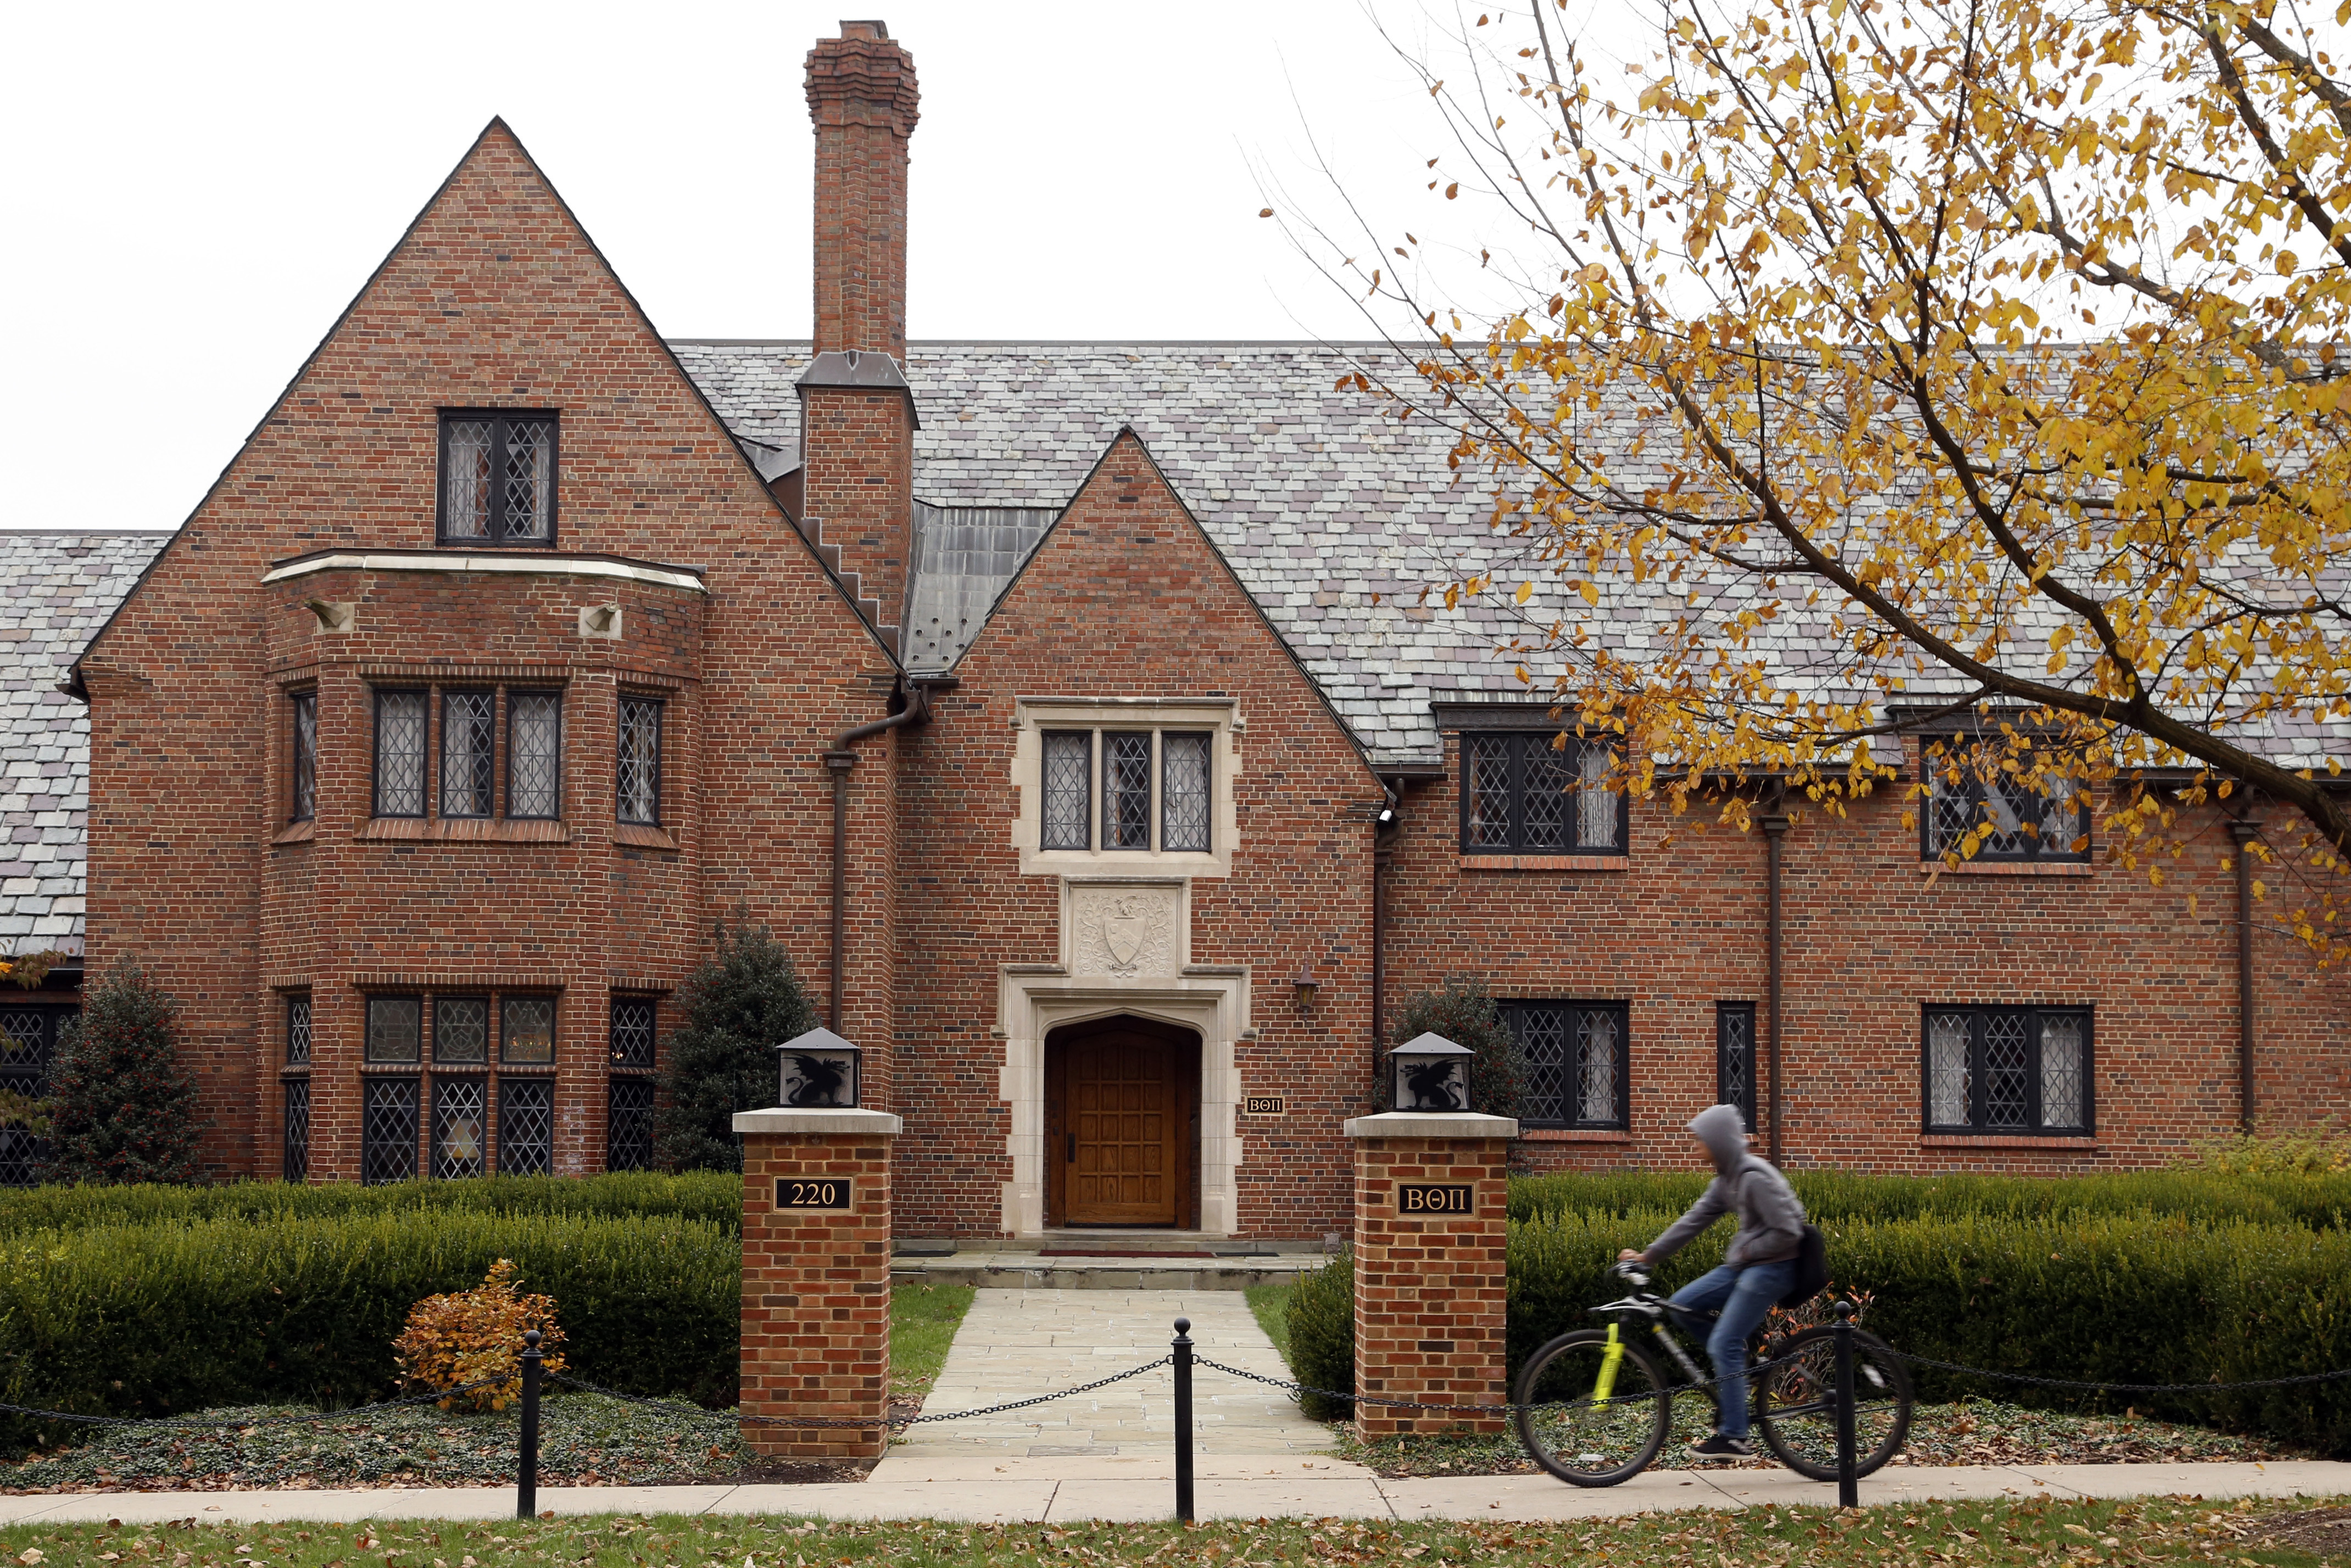 A bicyclist rides past Pennsylvania State University's shuttered Beta Theta Pi fraternity house on Nov. 9, 2017, in State College, Pa.